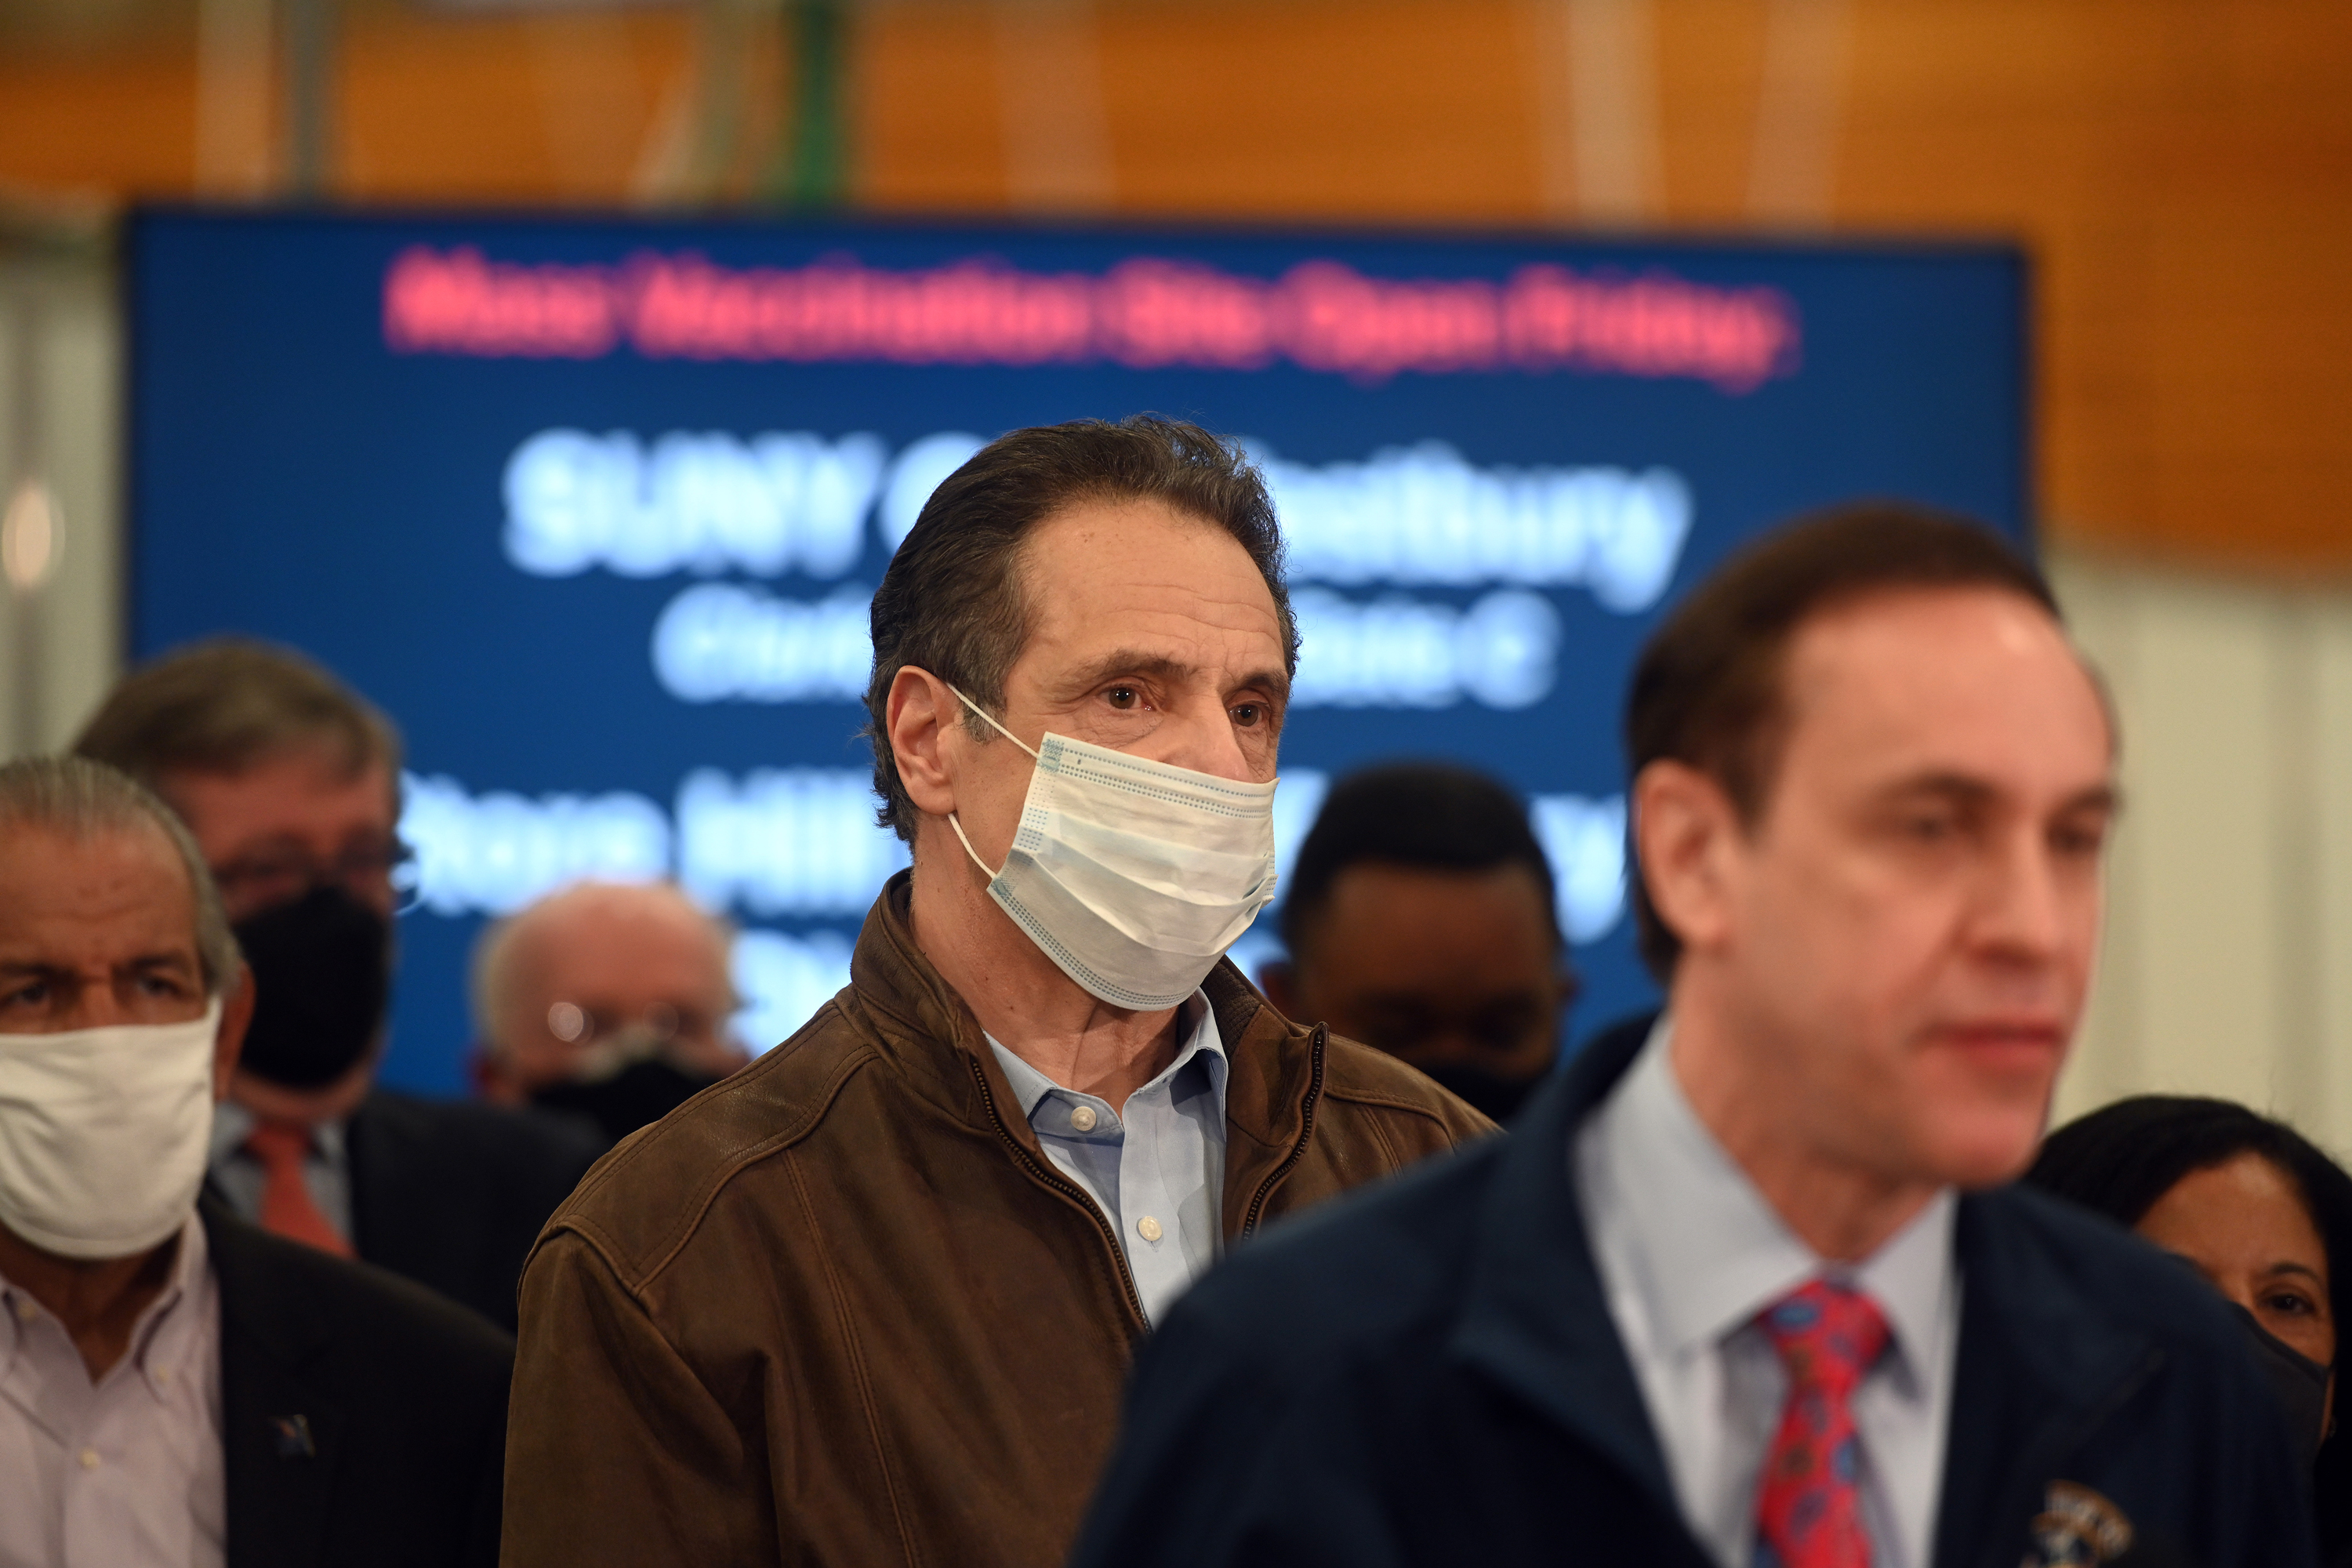 Governor Andrew Cuomo attends the opening of a new mass vaccination site at SUNY Old Westbury, March 14, 2021.